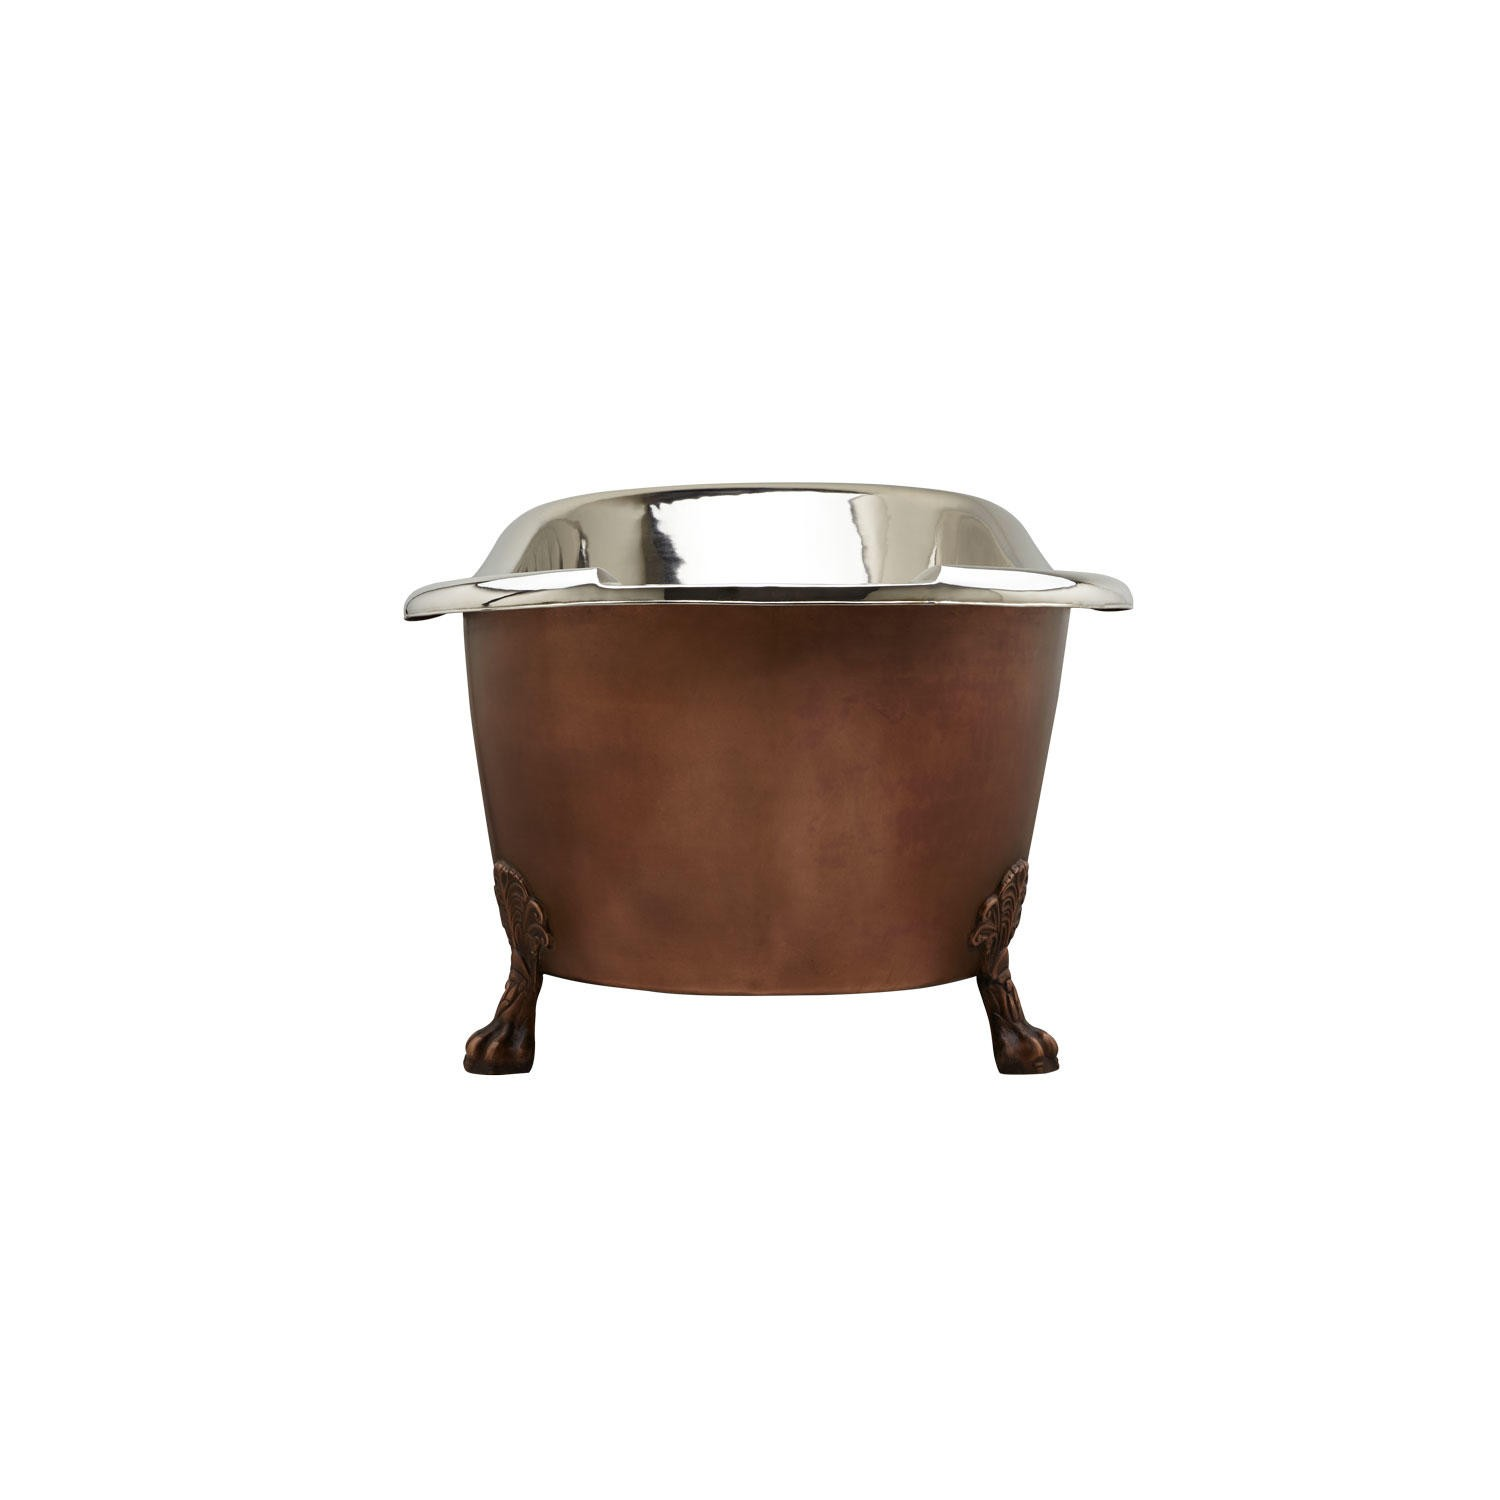 Smooth Copper Nickel Clawfoot Tub | Coppersmith® Creations